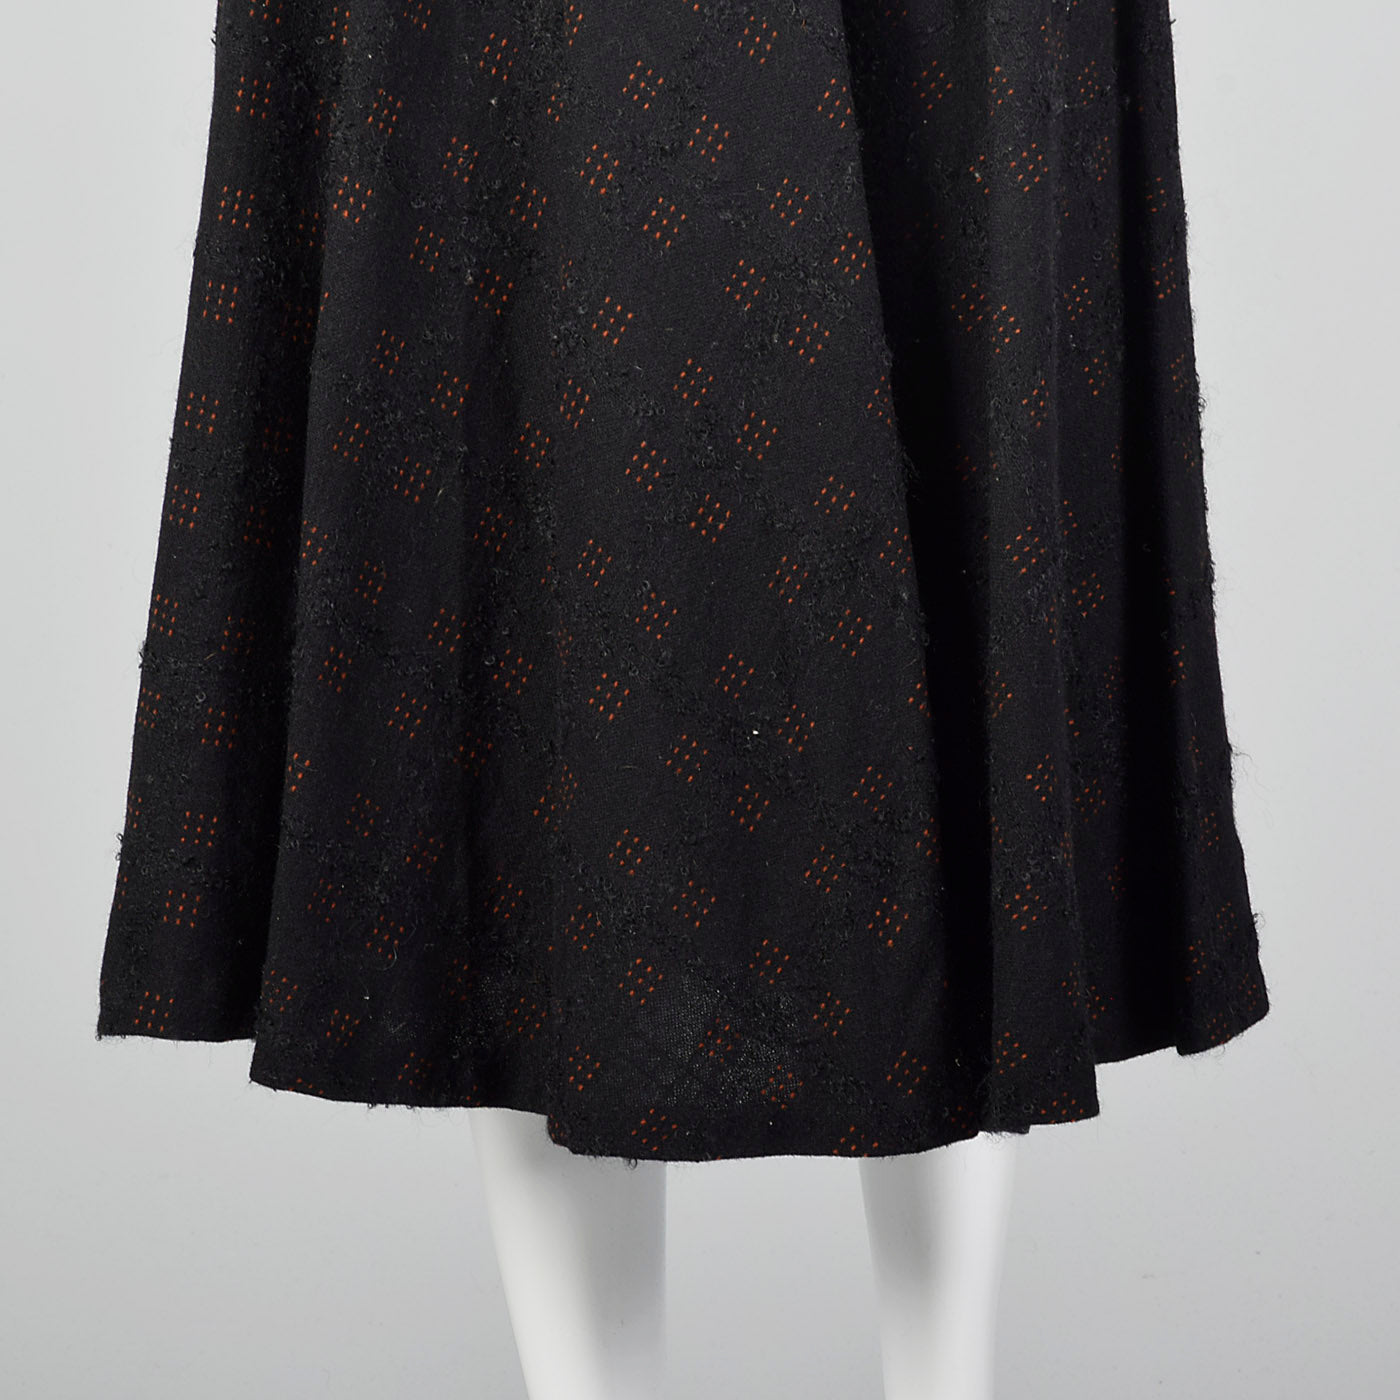 1950s Black Wool Fit and Flare Skirt